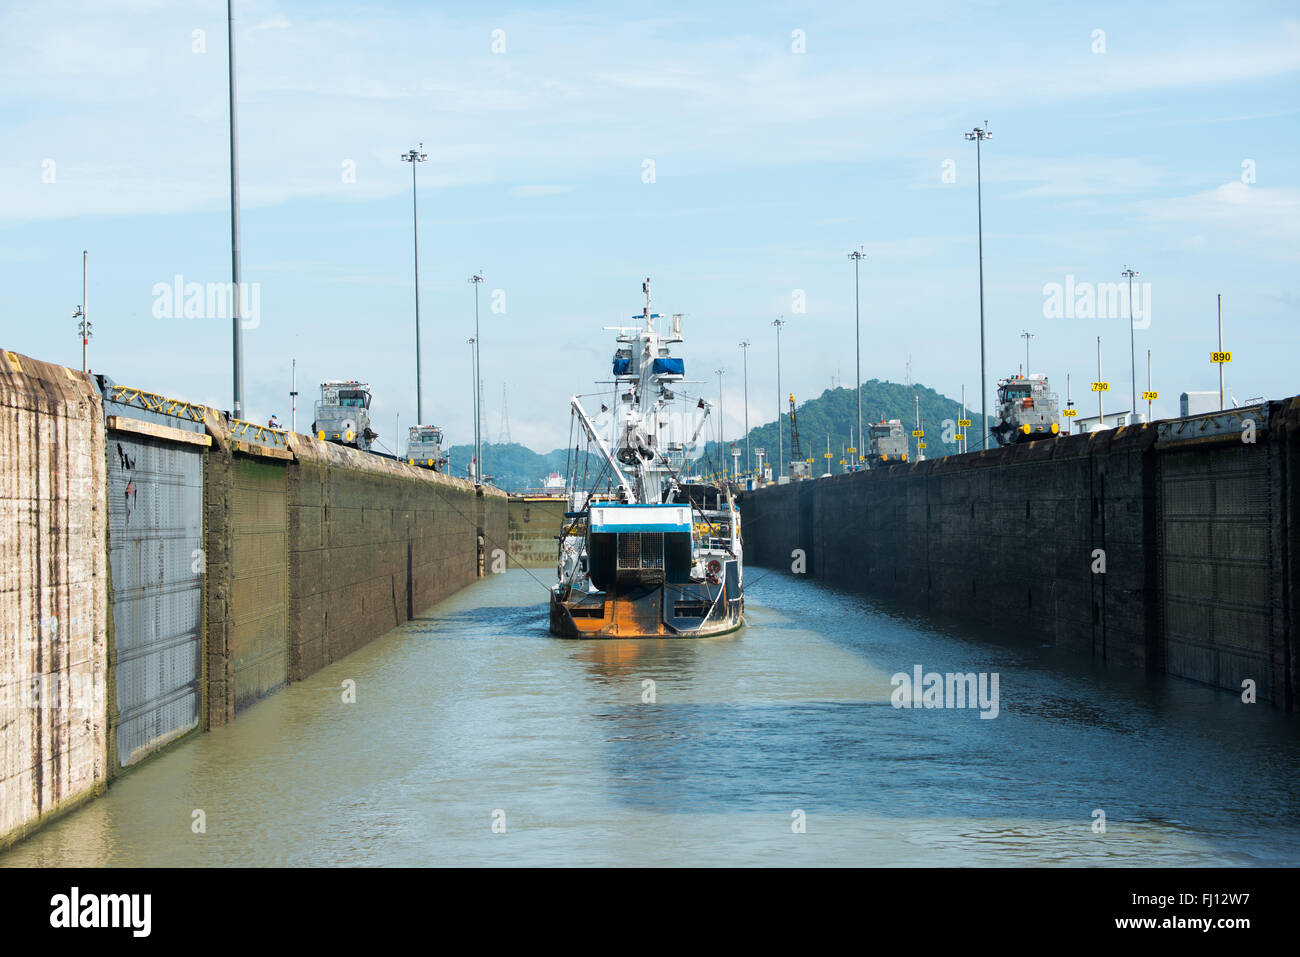 PANAMA CANAL, Panama--Inside the Miraflores Locks on the southern end of the Panama Canal. Opened in 1914, the Panama - Stock Image